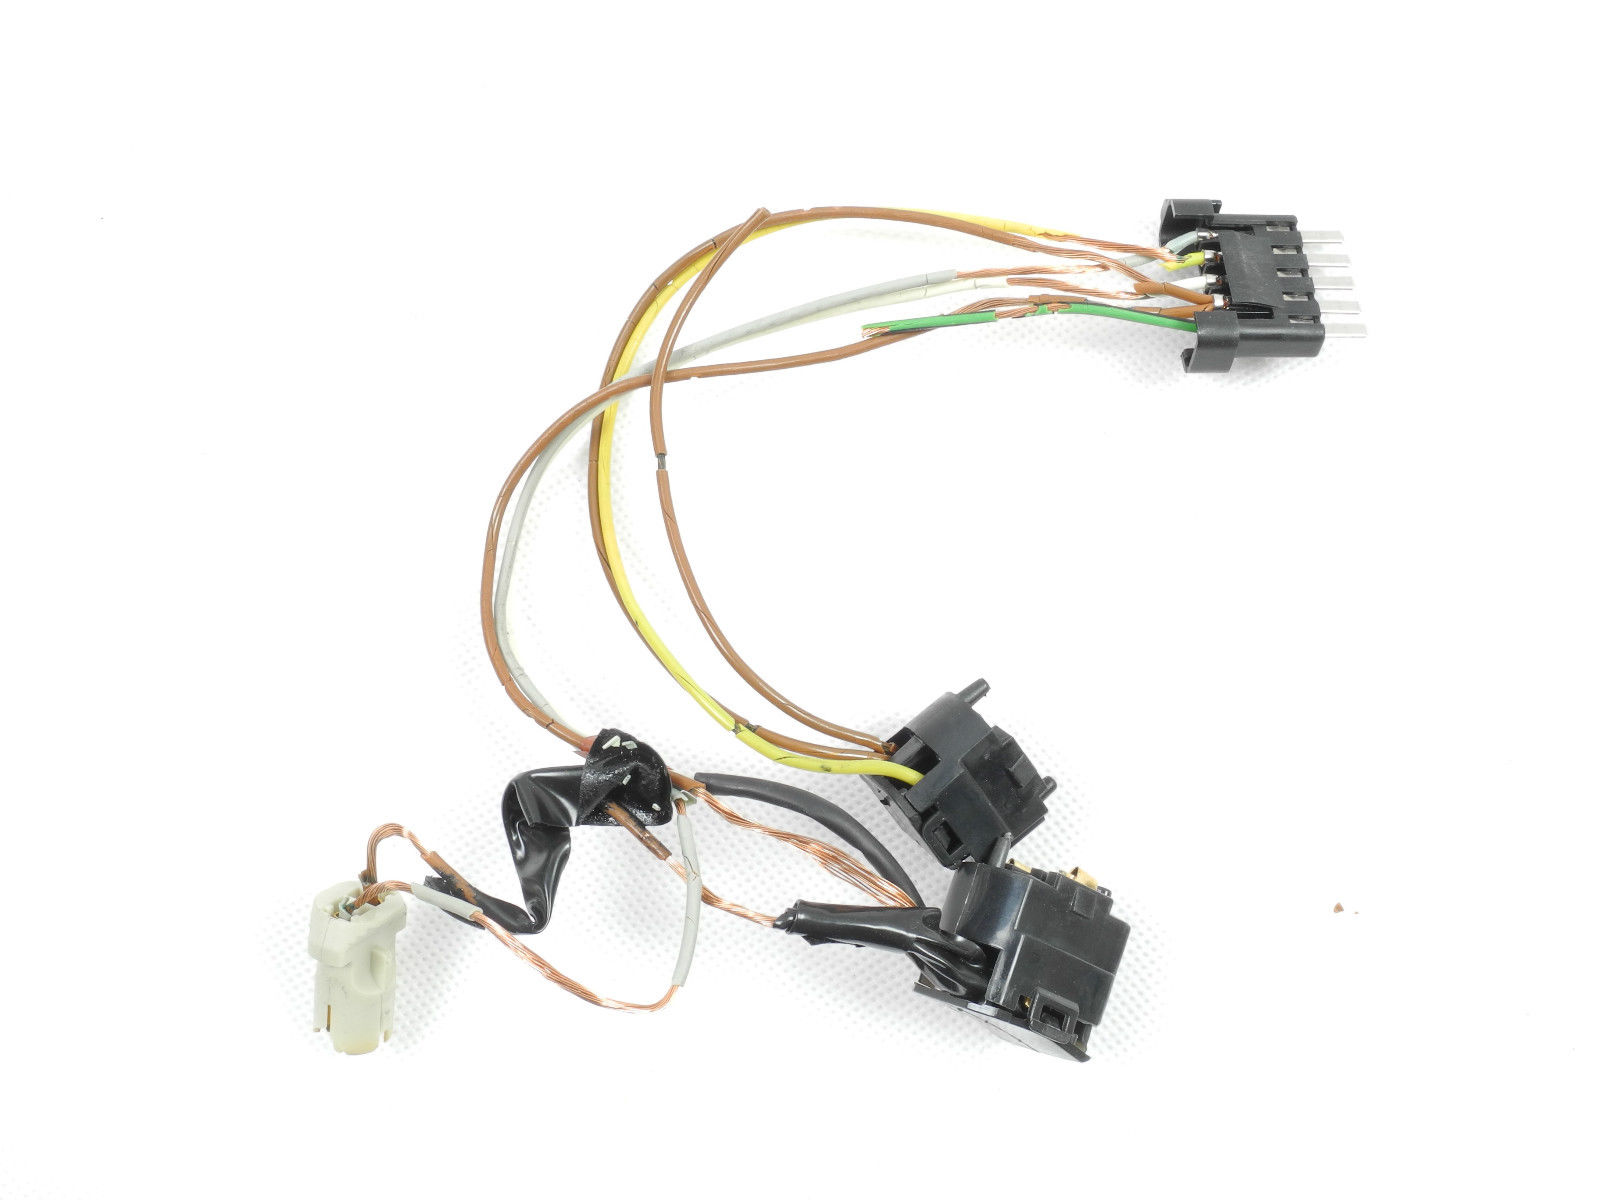 2005 subaru headlight wiring diagram for mercedes c350 c280 c32amg c240 headlight wire harness ...